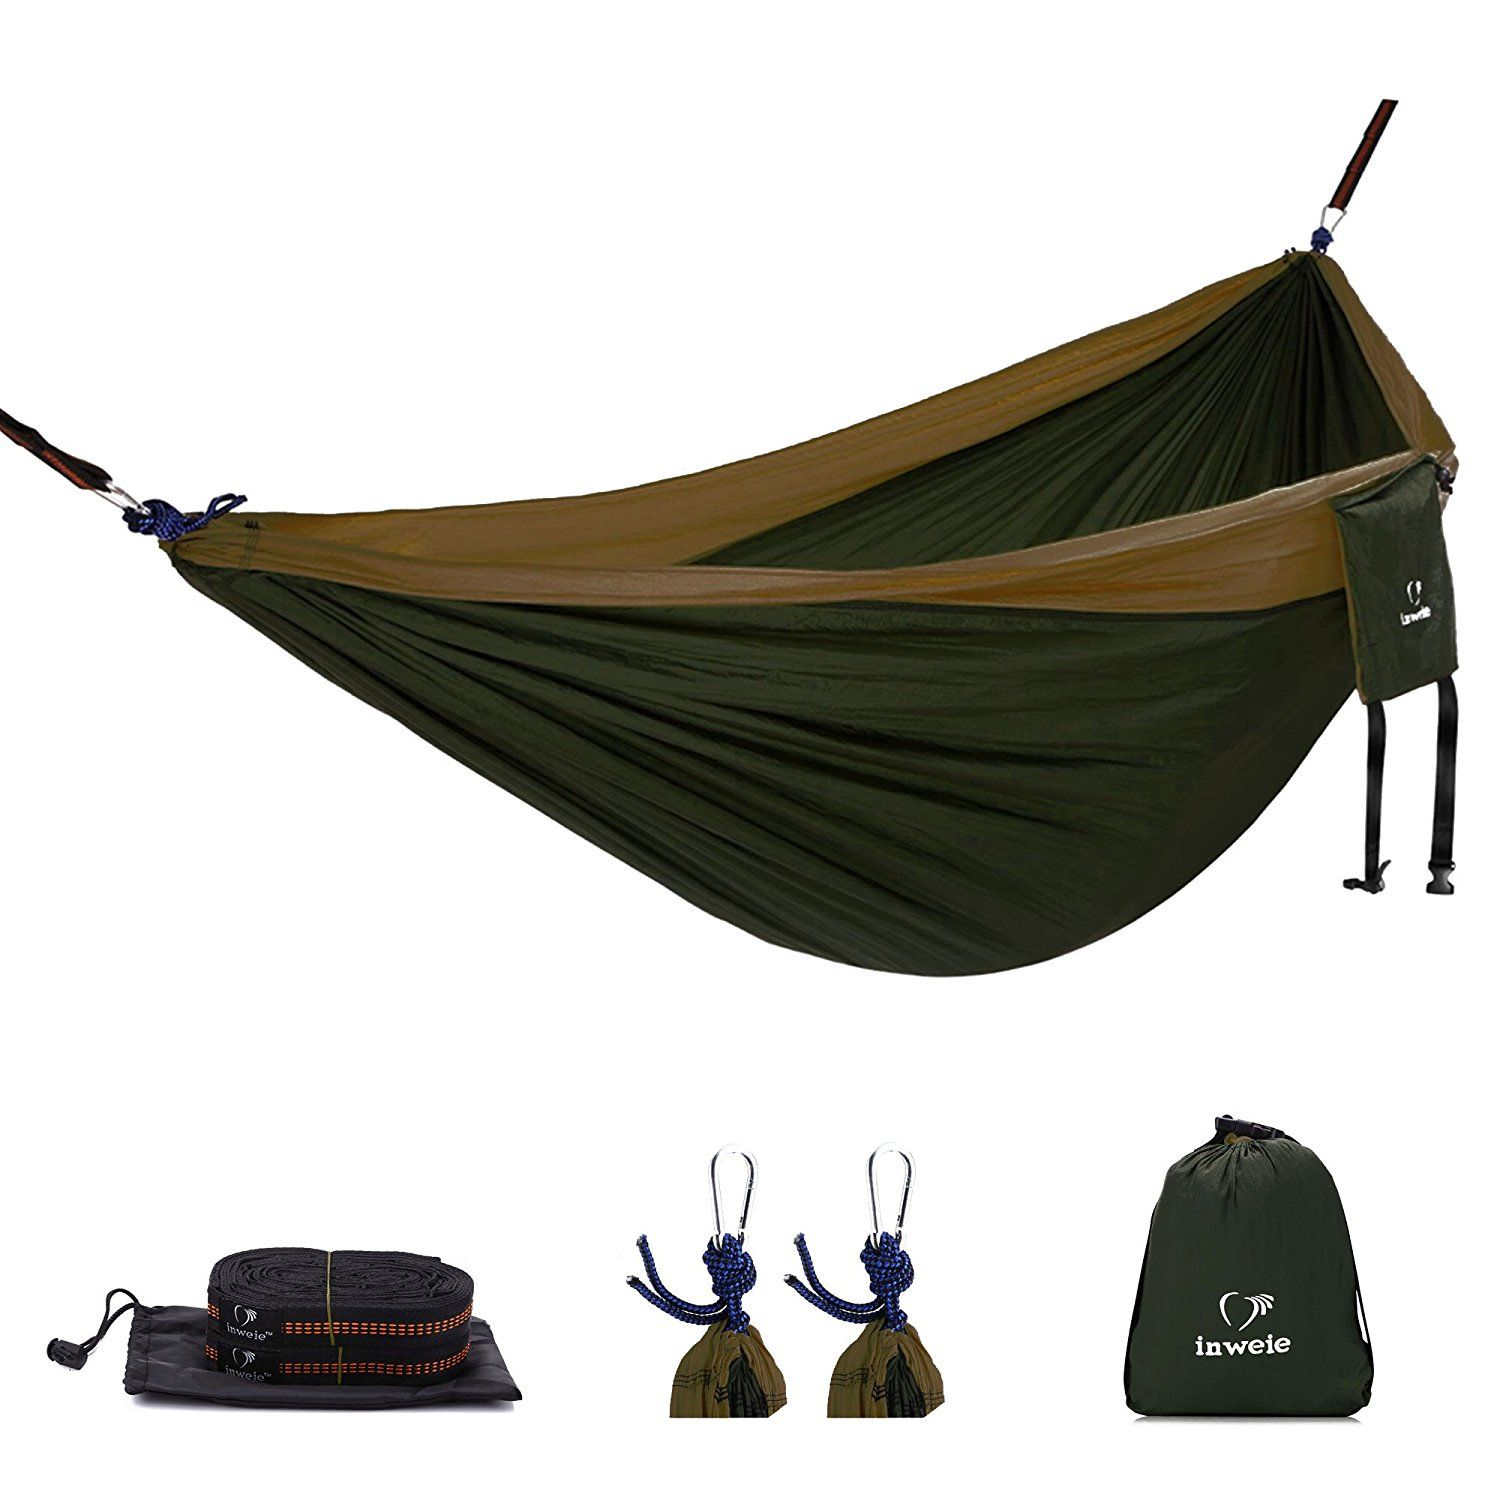 double camping hammock with hammock straps and steel carabiners   10 ft outdoor lightweight portable nylon double camping hammock with hammock straps and steel carabiners      rh   pinterest